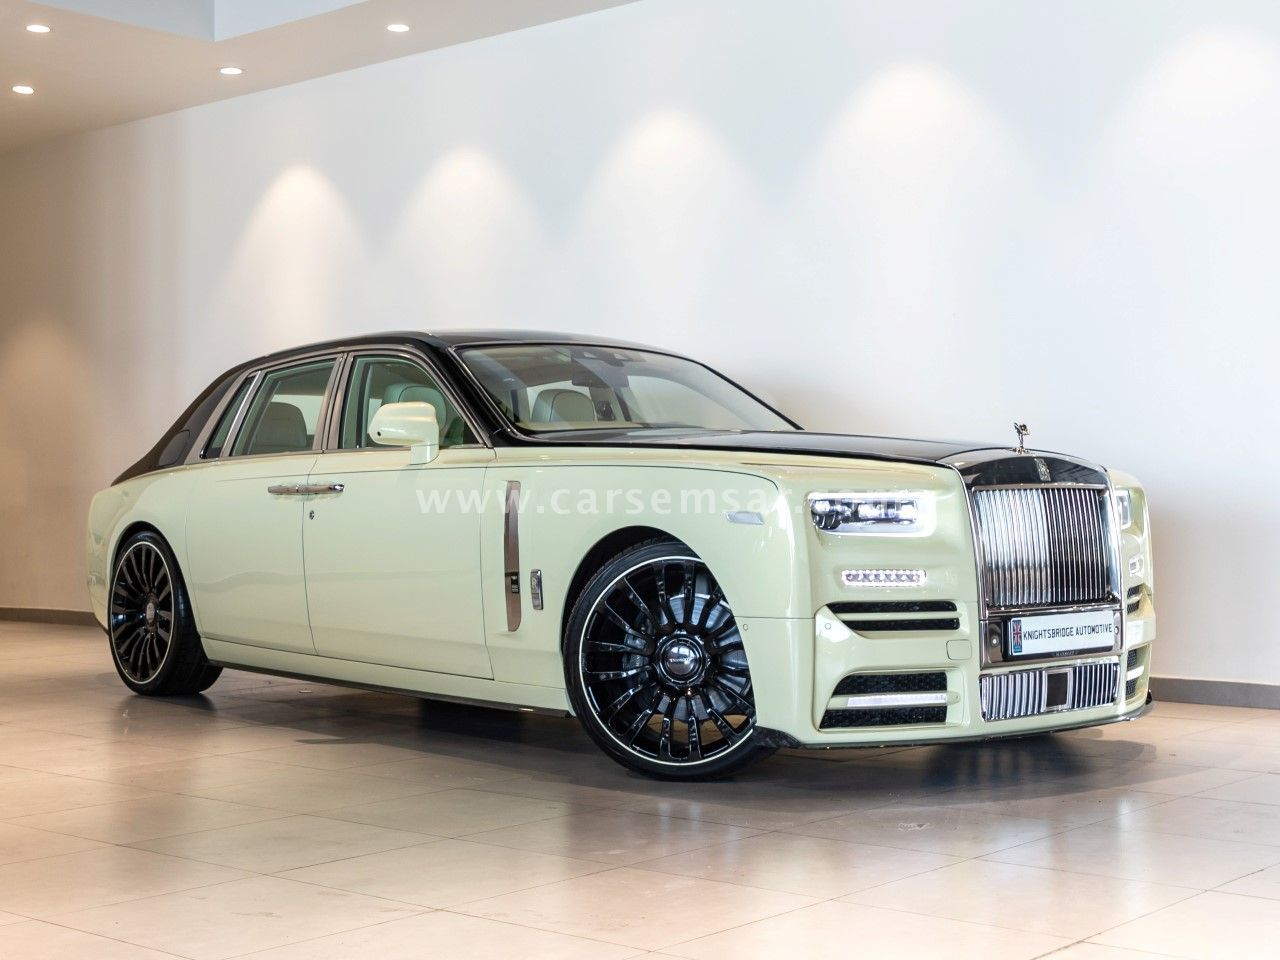 2018 Rolls Royce Phantom Mansory For Sale In Qatar New And Used Cars For Sale In Qatar